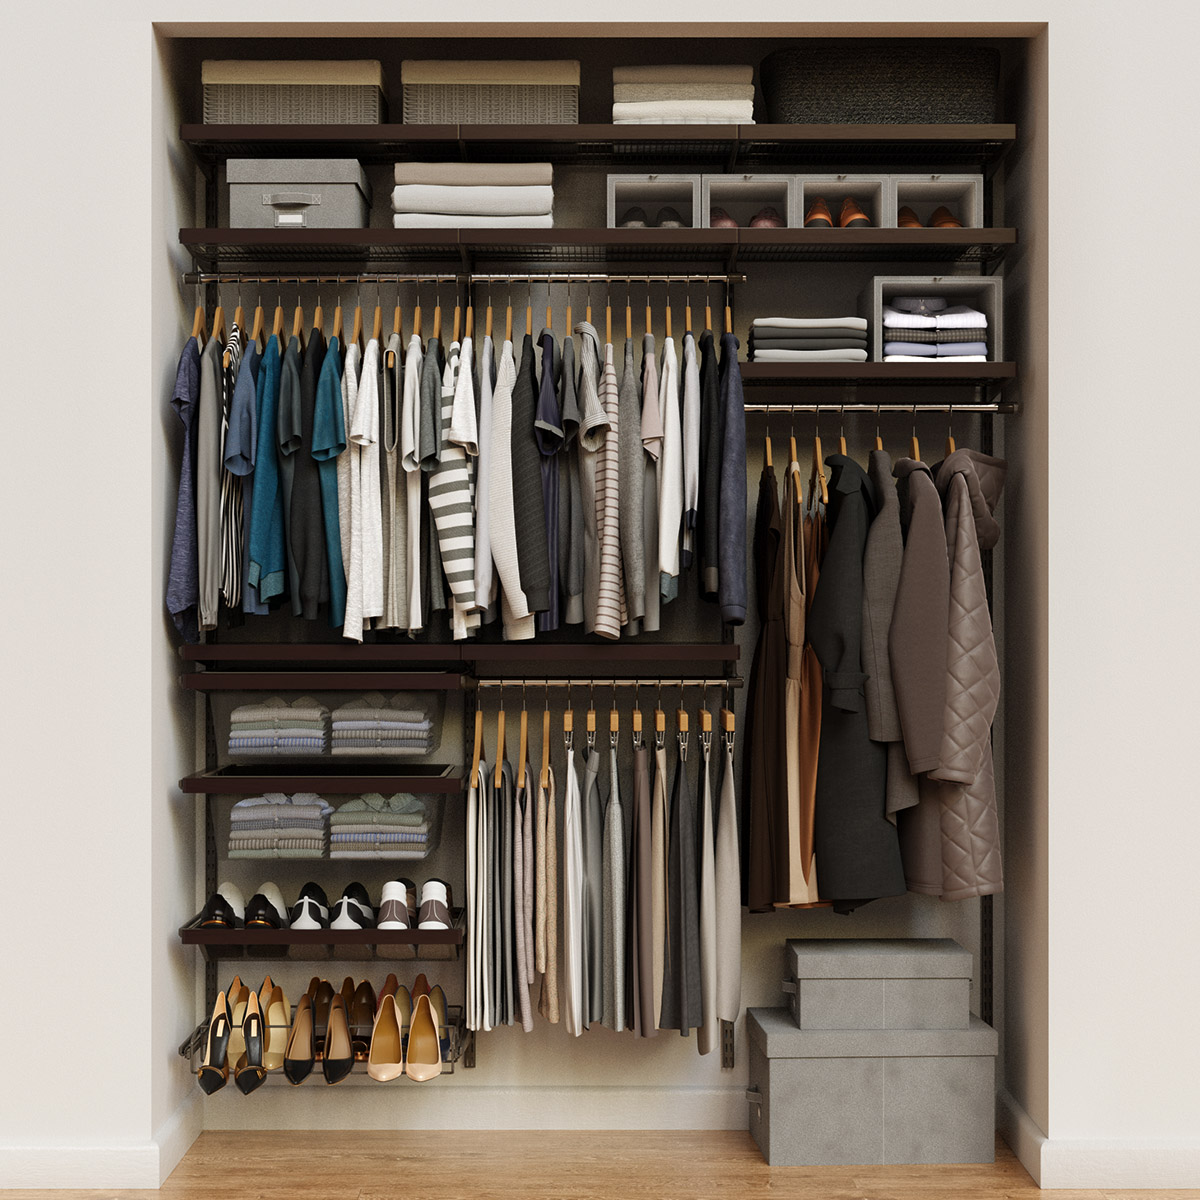 Elfa Decor 6' Graphite & Walnut Reach-In Closet